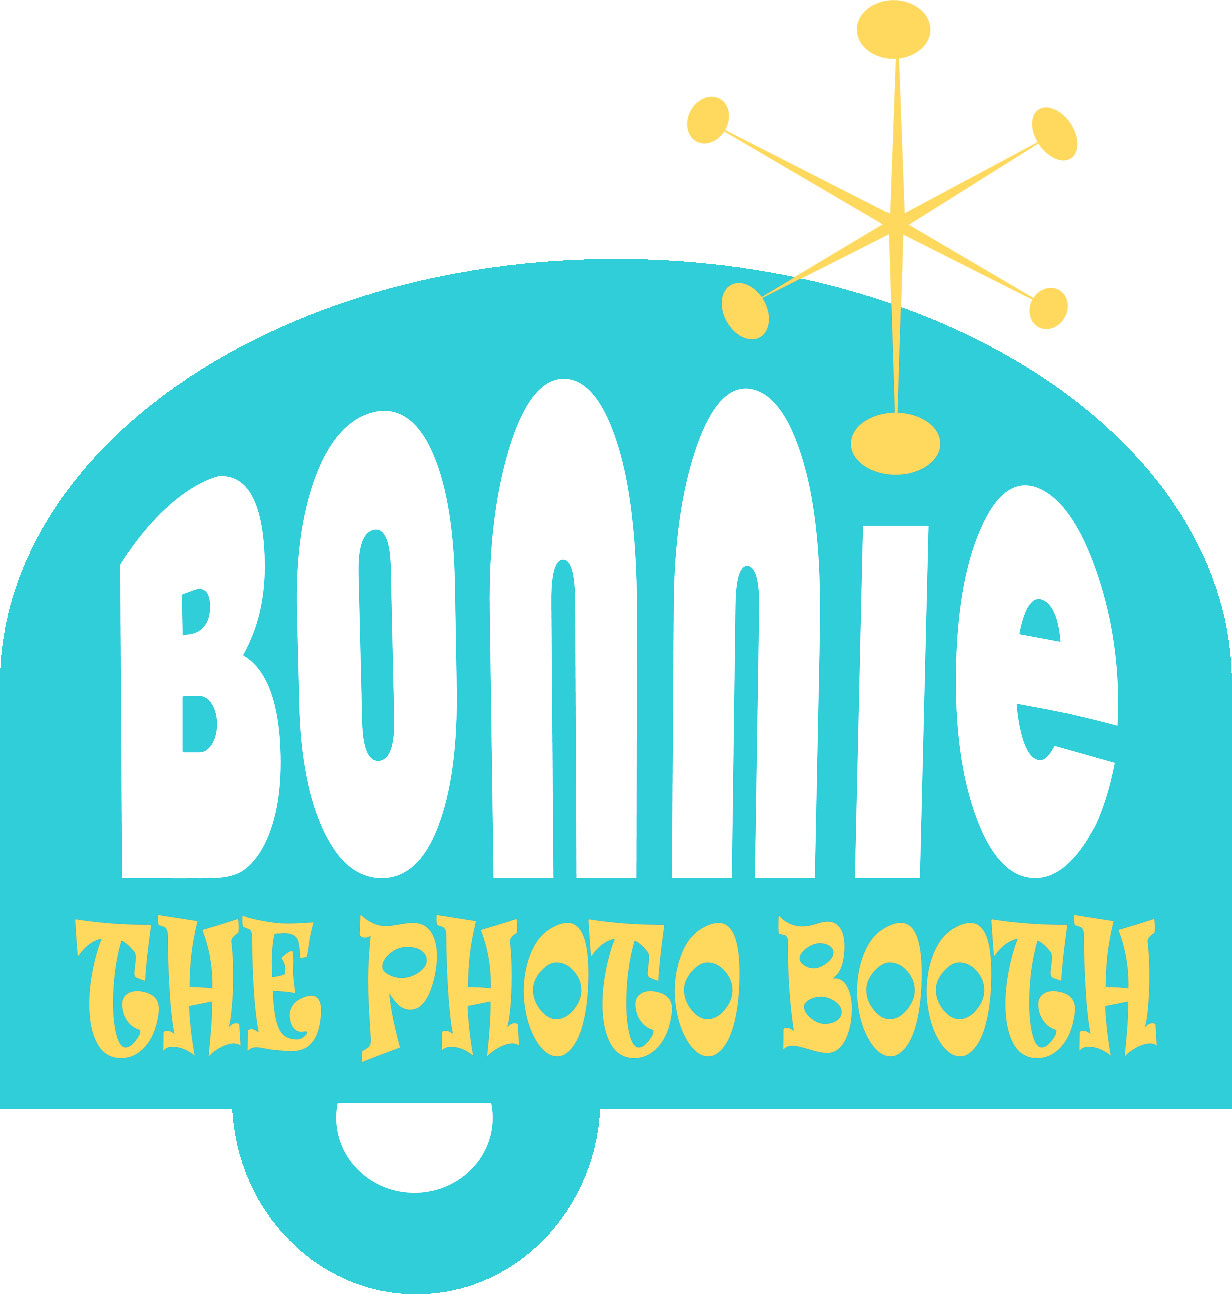 Bonnie the Photo Booth logo